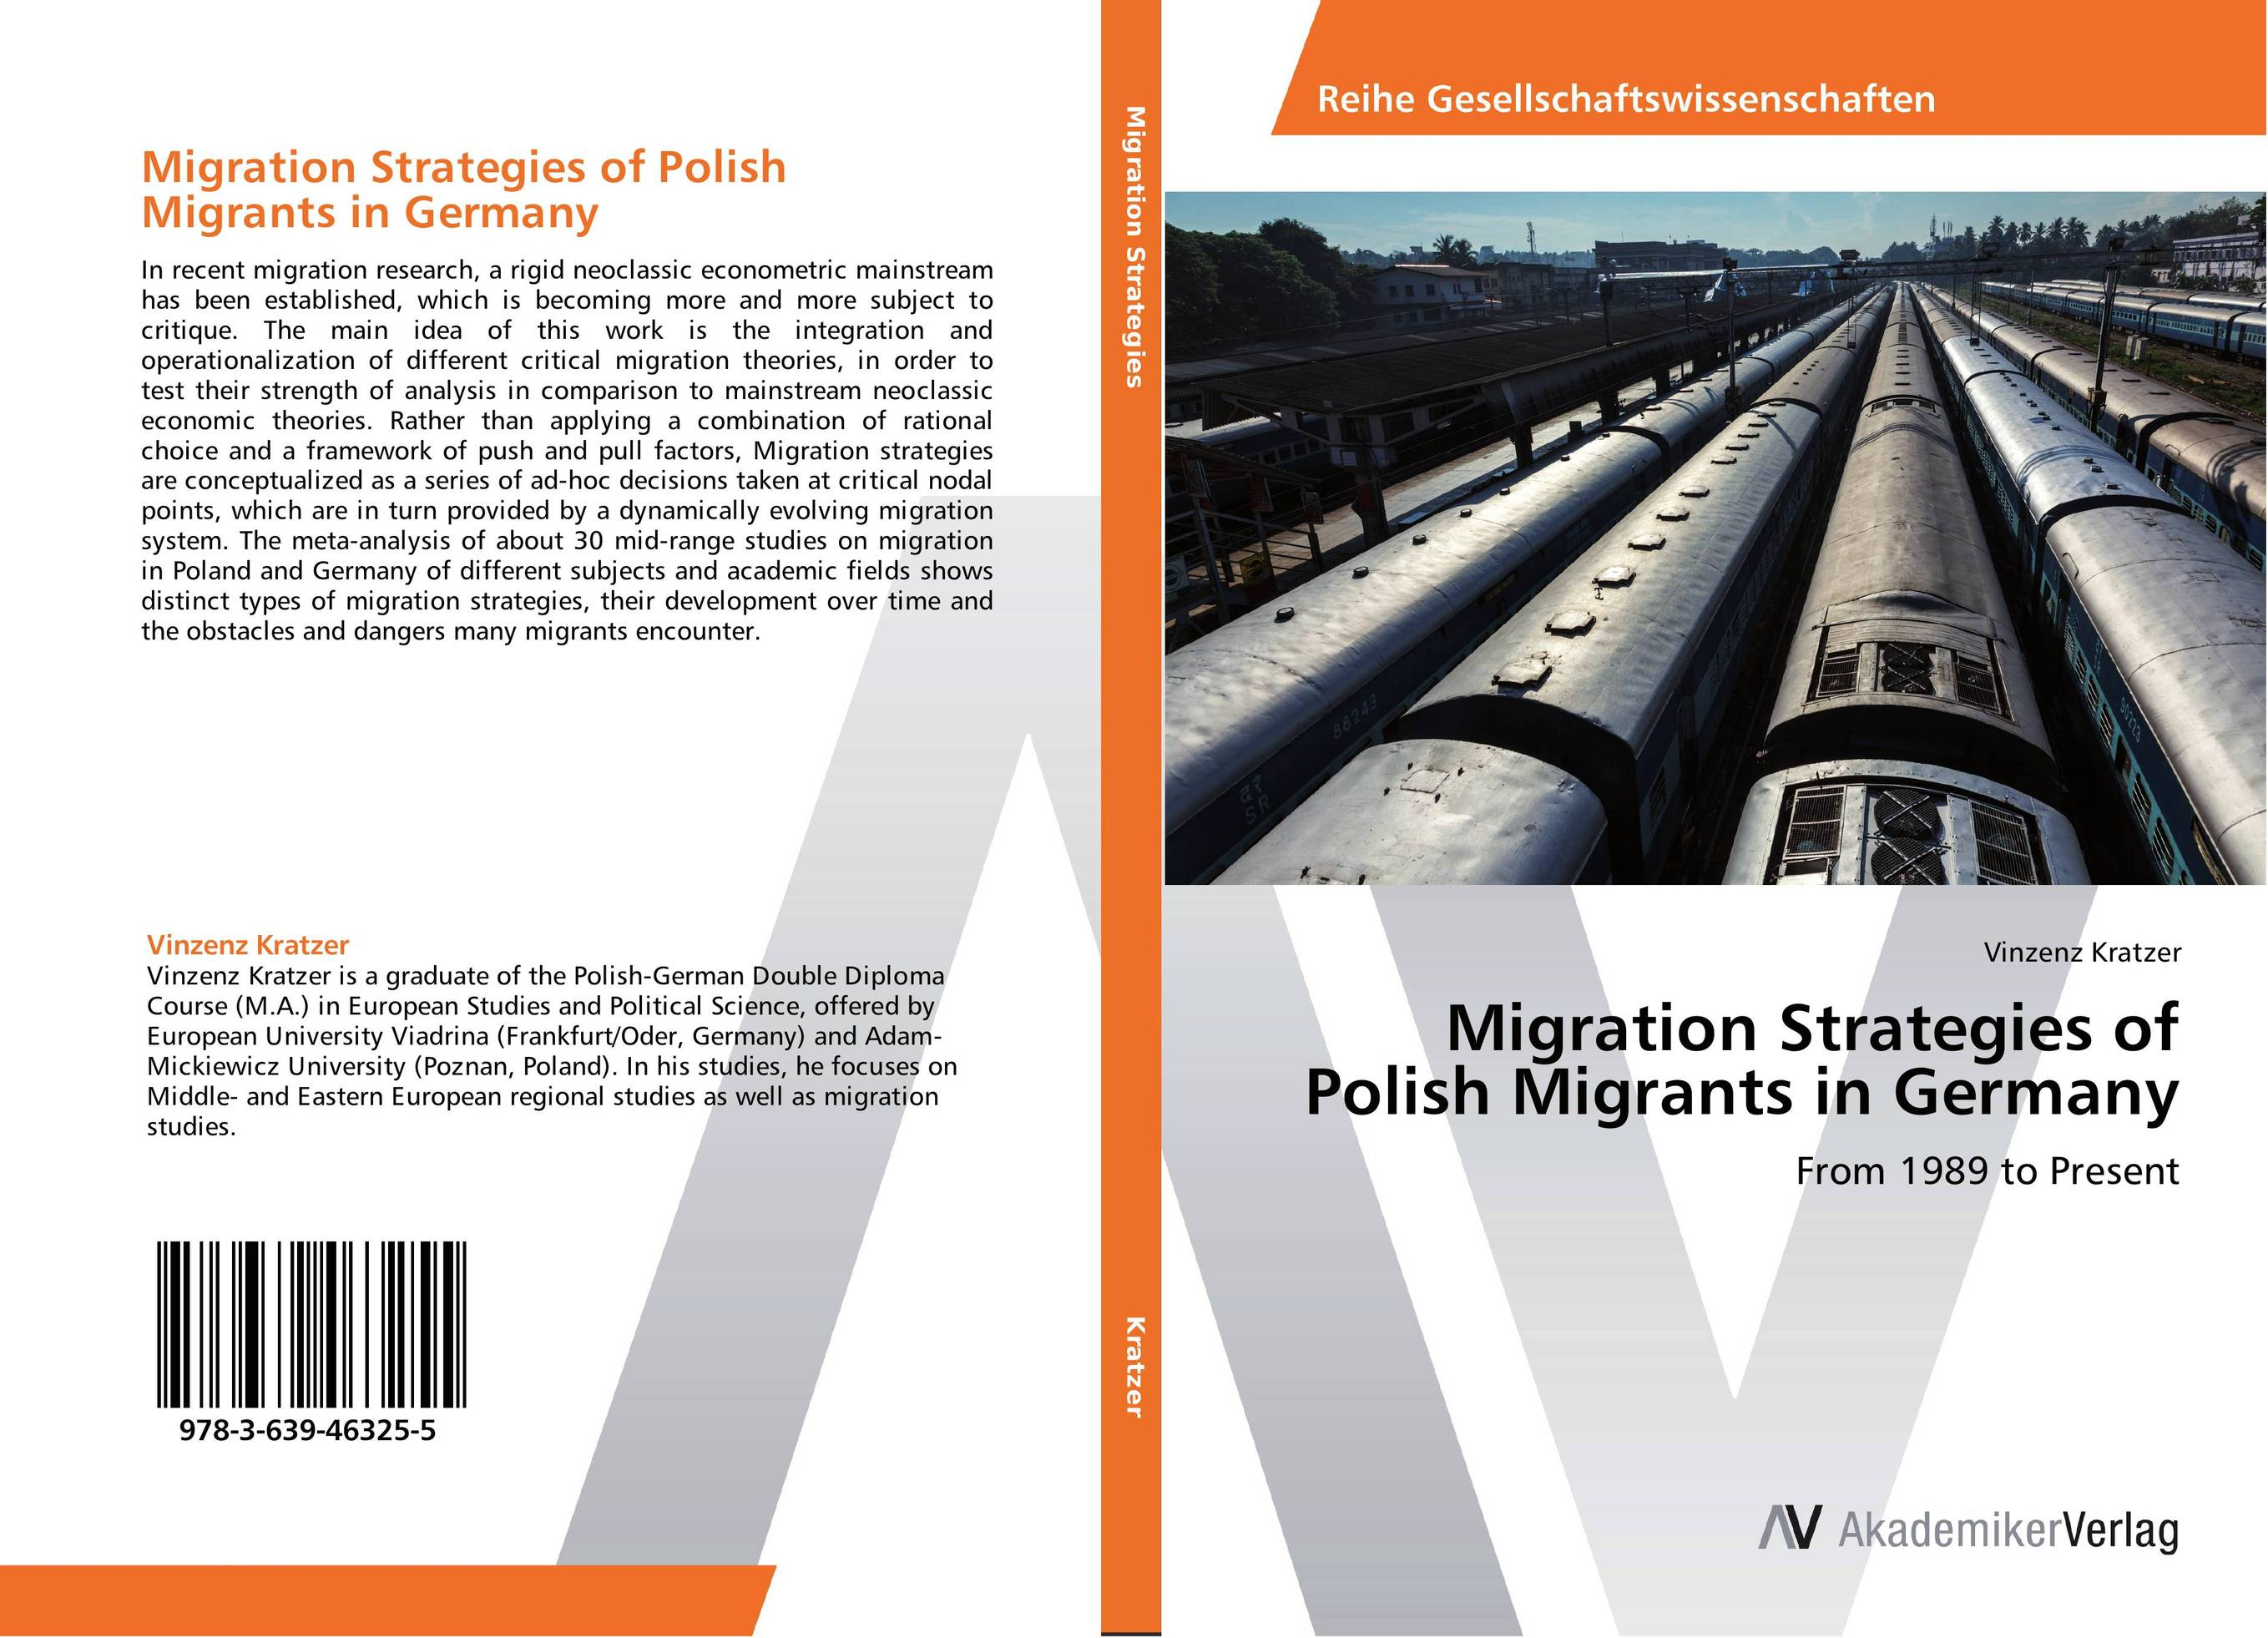 Migration Strategies of Polish Migrants in Germany